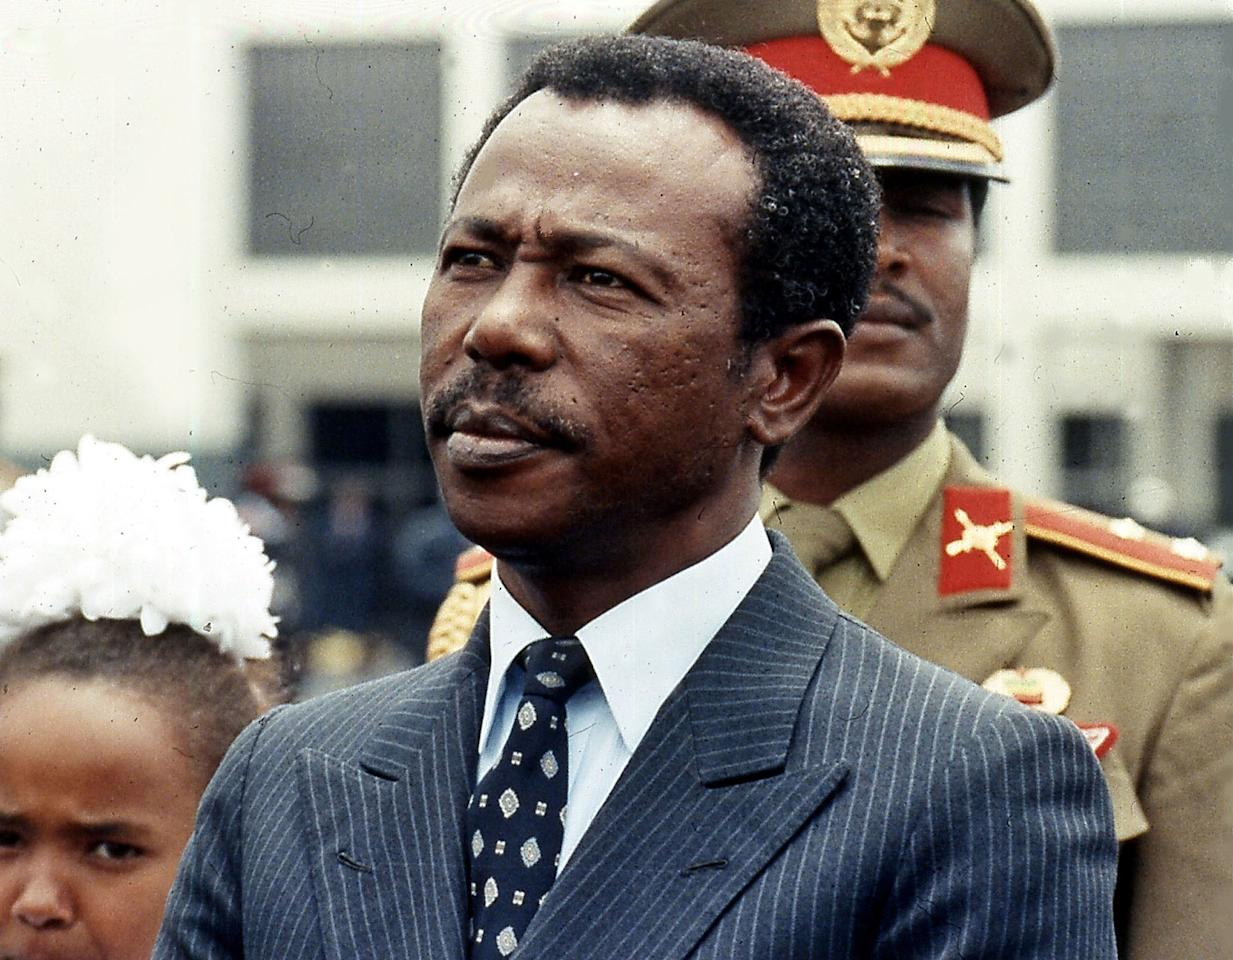 "** FILE ** Former Ethiopian president Mengistu Haile Marian, is seen in Ethiopia, in this Aug. 9, 1990 file photo. Mariam, the Ethiopian dictator who directed the ""Red Terror"" against supposed enemies of his Soviet-backed regime, was convicted Tuesday, Dec. 12, 2006, of genocide in a rare case of an African strongman being called to account by his own country. Mengistu has been living in exile in Zimbabwe since 1992 and was convicted in absentia after a 12-year trial. He could face the death penalty at his Dec. 28 sentencing, but Zimbabwean President Robert Mugabe said he won't deport Mengistu if he refrains from making political statements or comments to the press.(AP Photo/Aris Saris)"